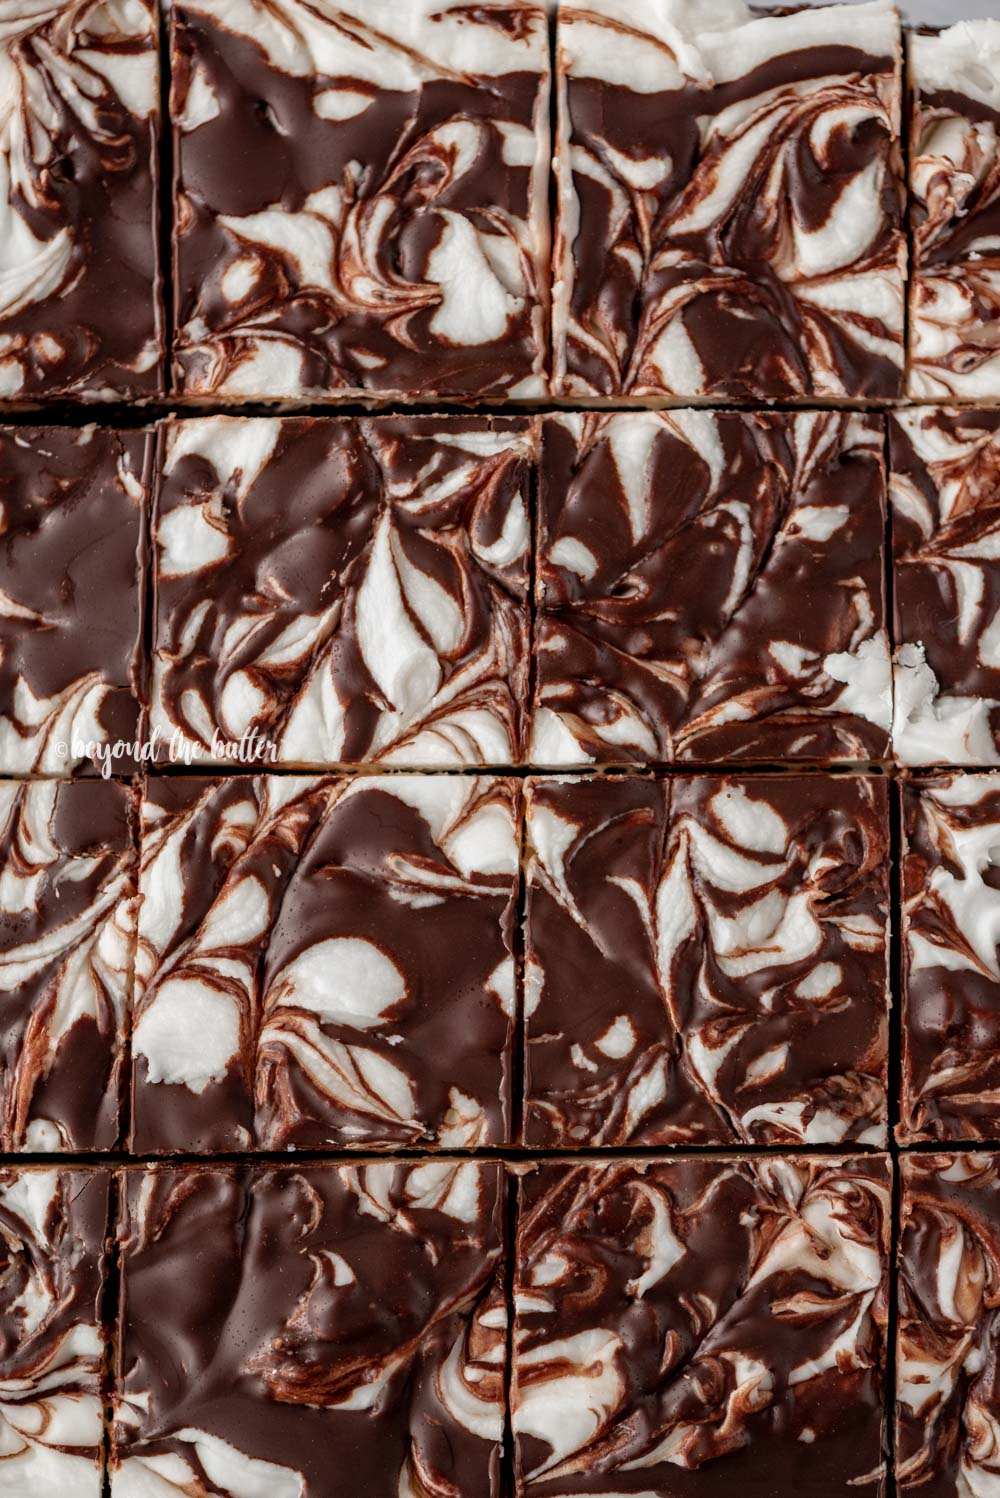 Close up of cut Chocolate Peppermint Swirled Brownies | All Images © Beyond the Butter, LLC